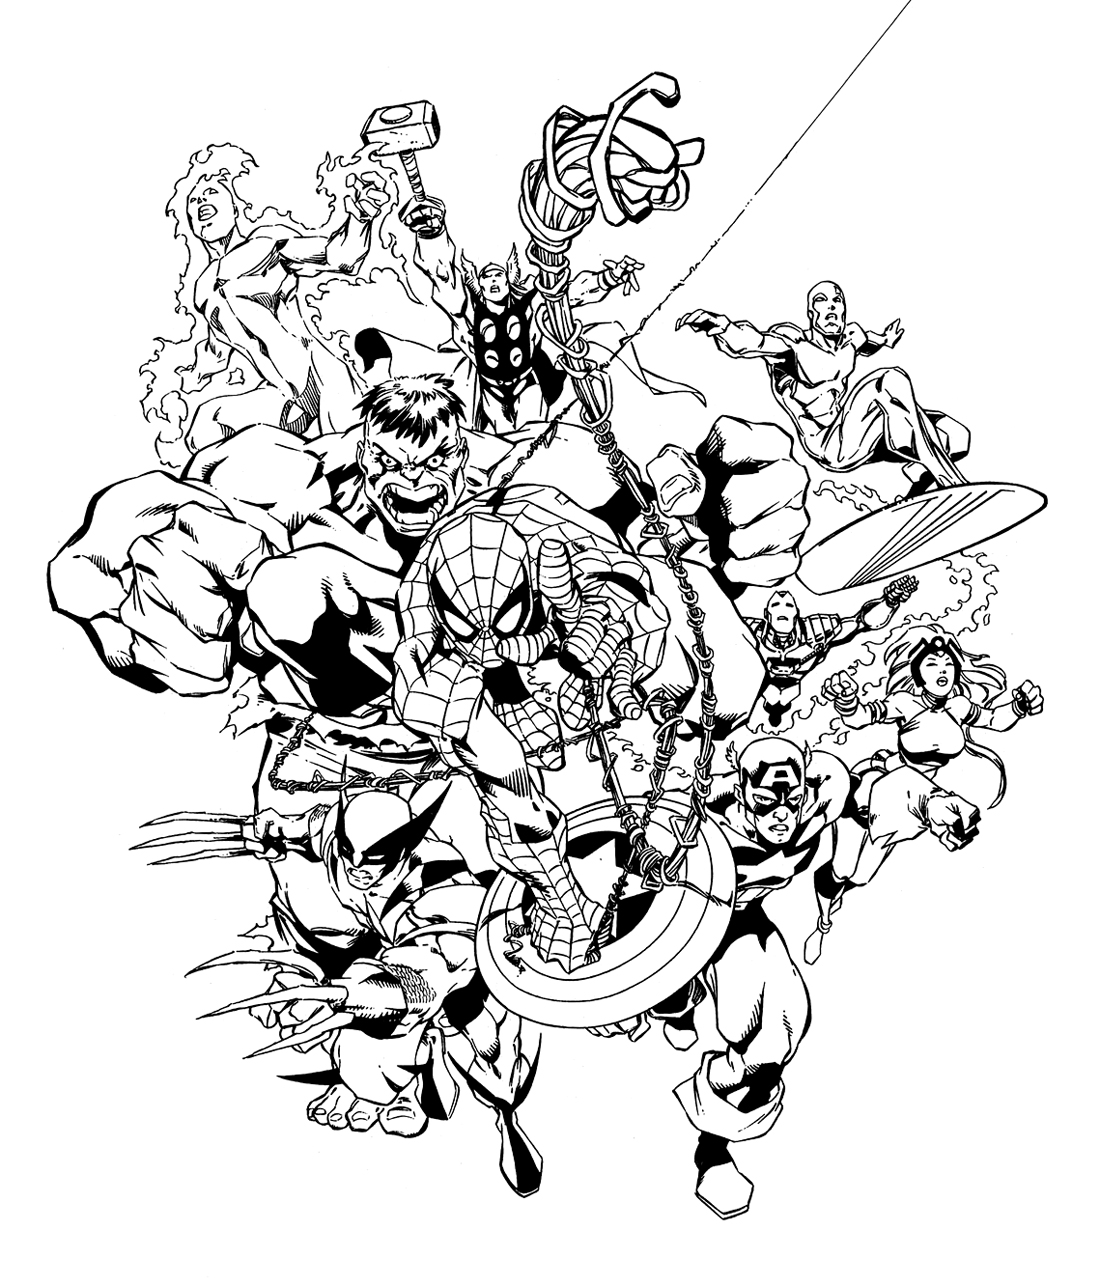 Marvel Avengers Coloring Pages at GetDrawings.com | Free for ...